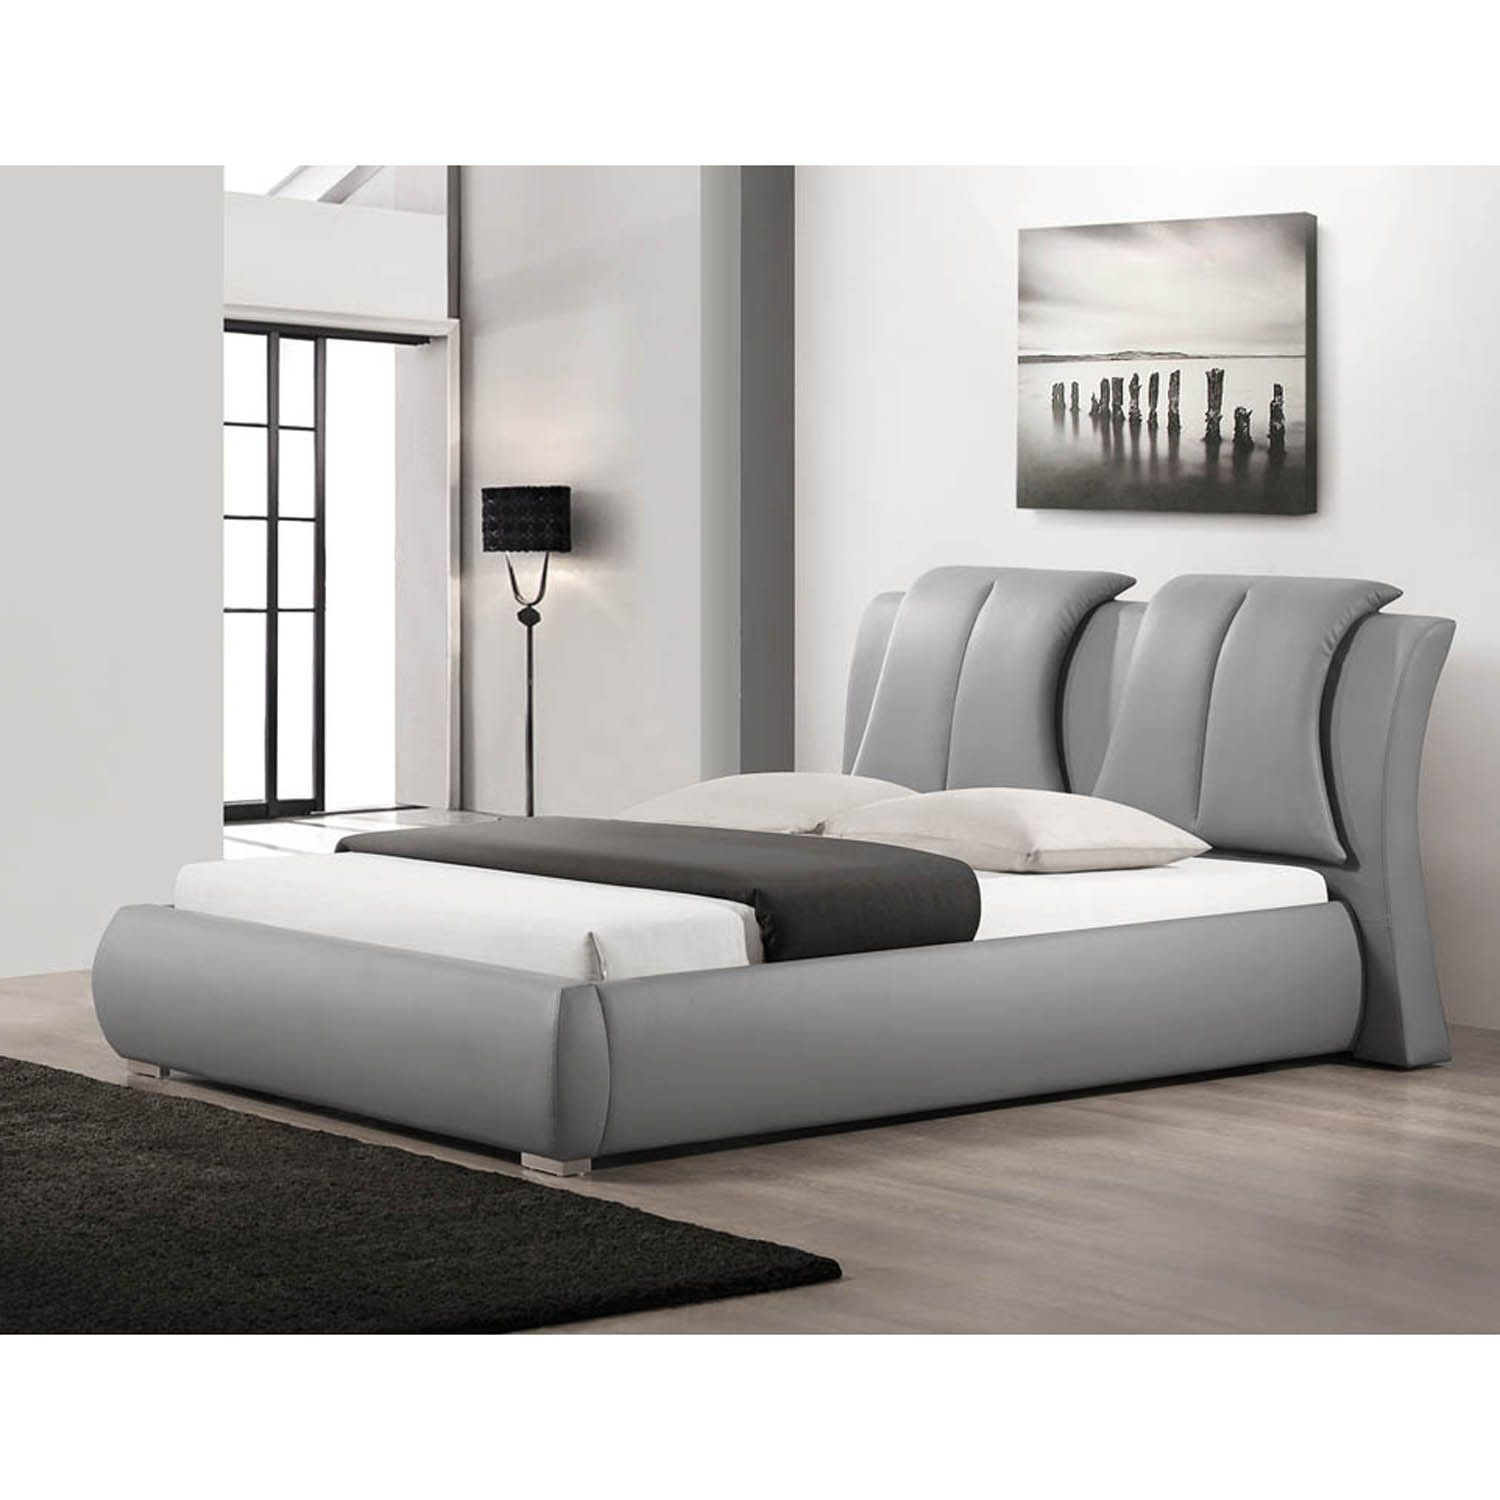 Fenton modern dark brown queen platform bed free shipping today - Malloy Grey Queen Size Modern Bed With Upholstered Headboard By Baxton Studio